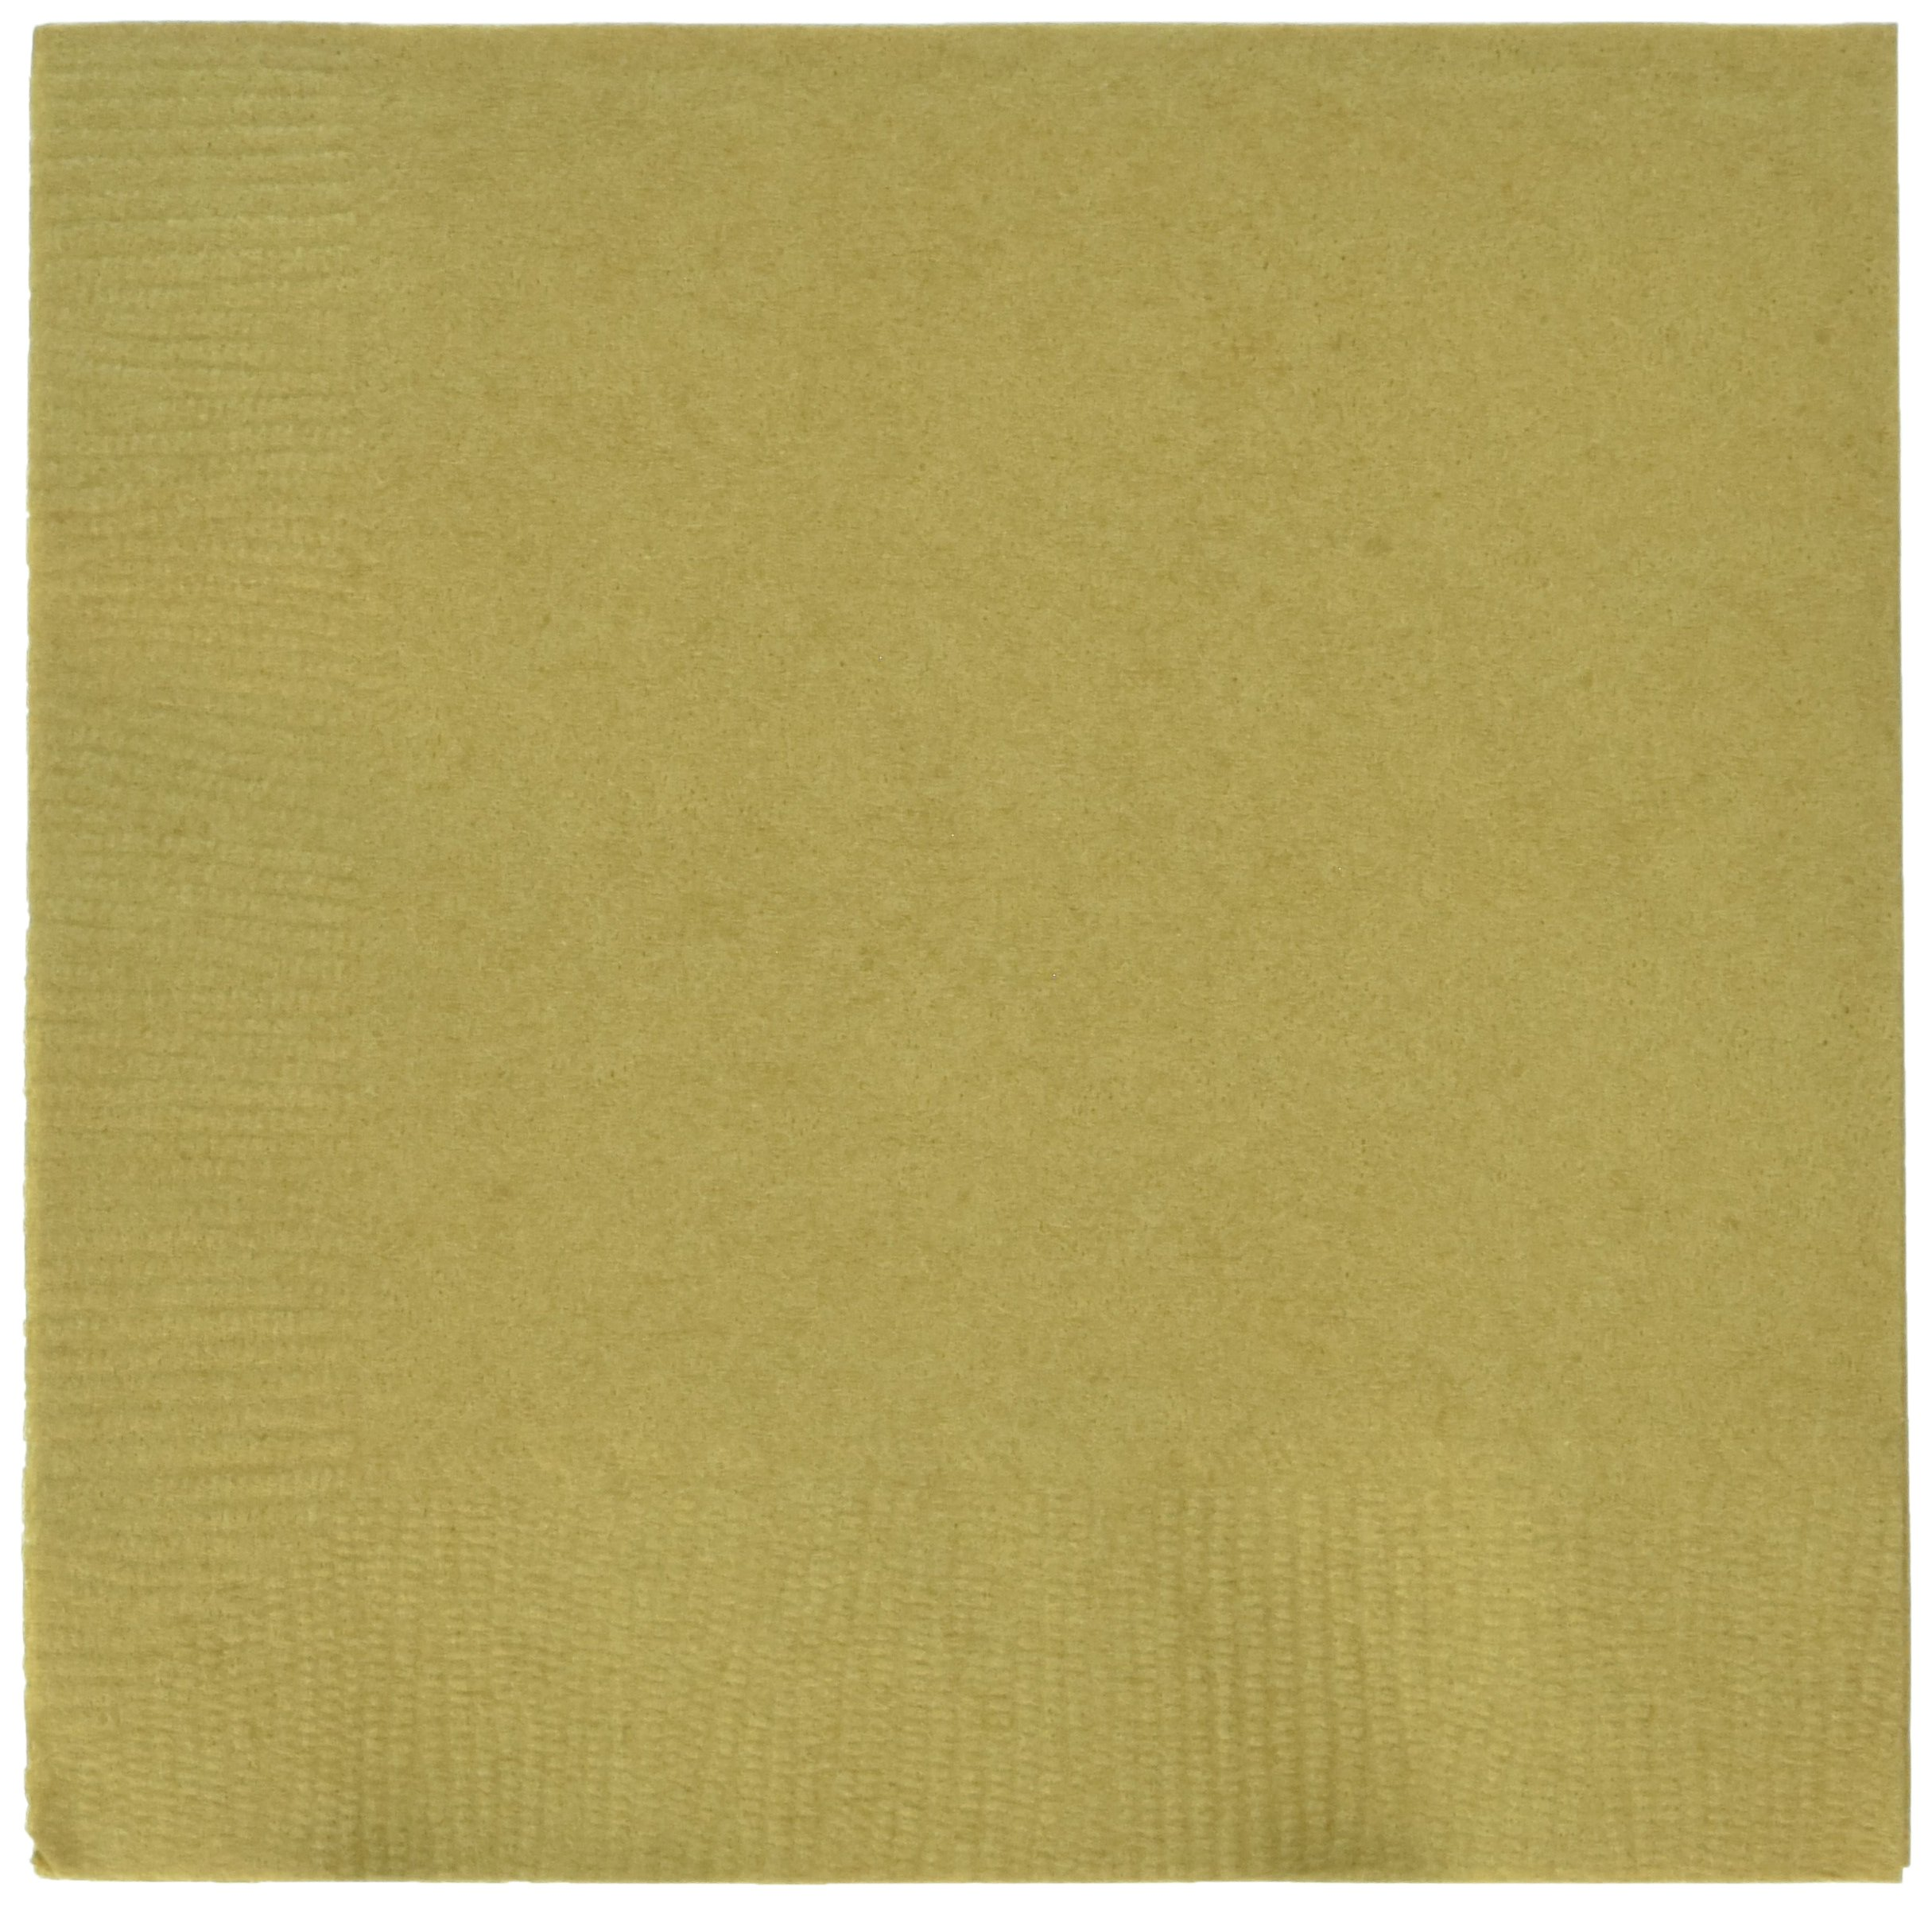 Gold 2-Ply Beverage Napkins | Pack of 50 | Party Supply